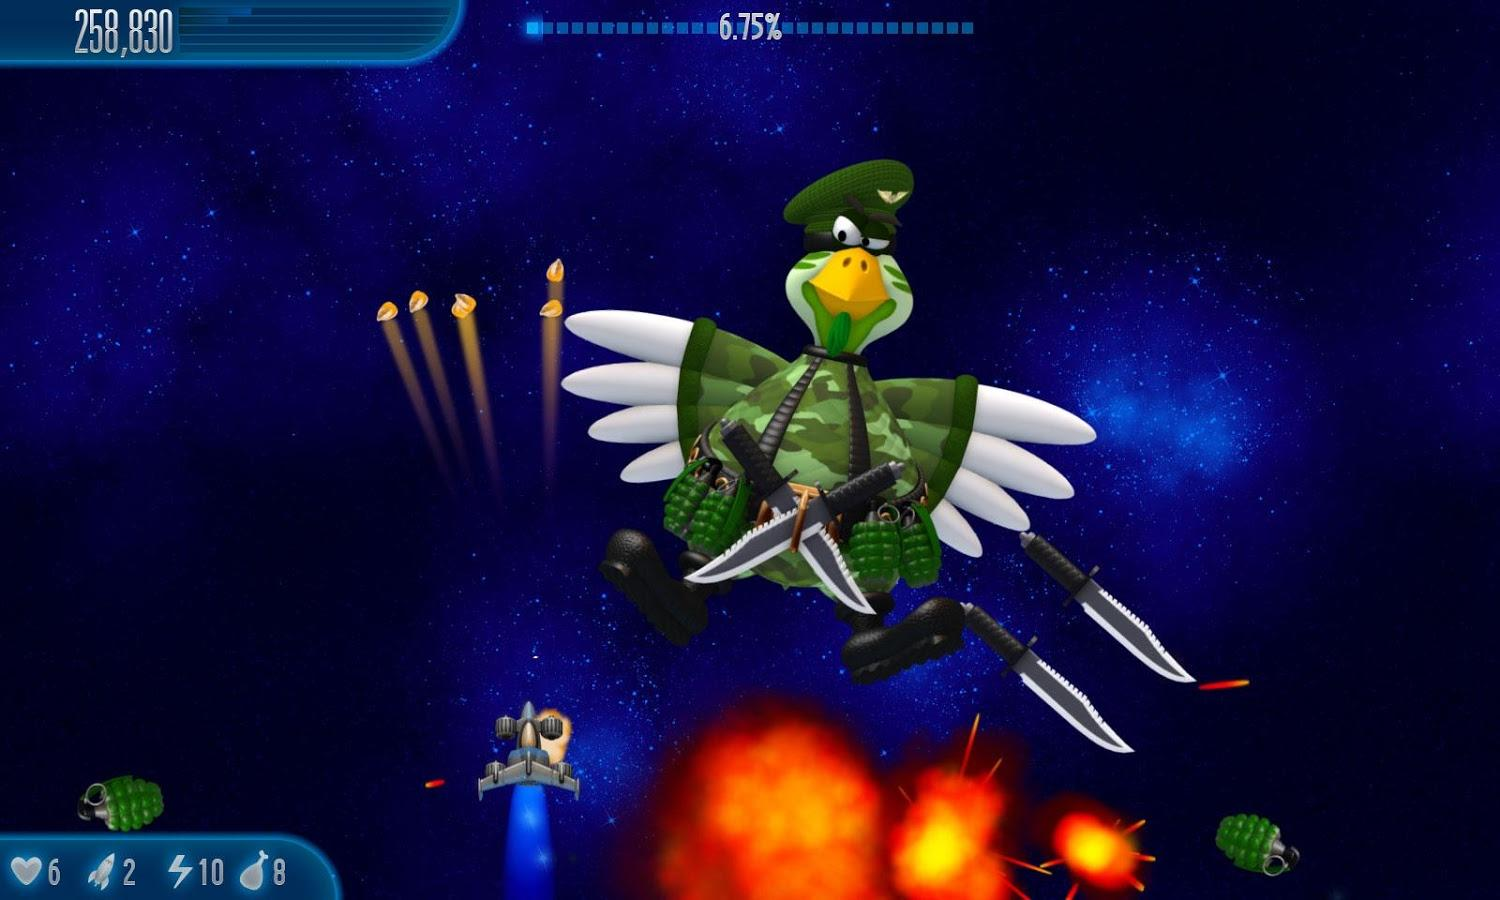 Chicken invaders 5 for android download apk free.